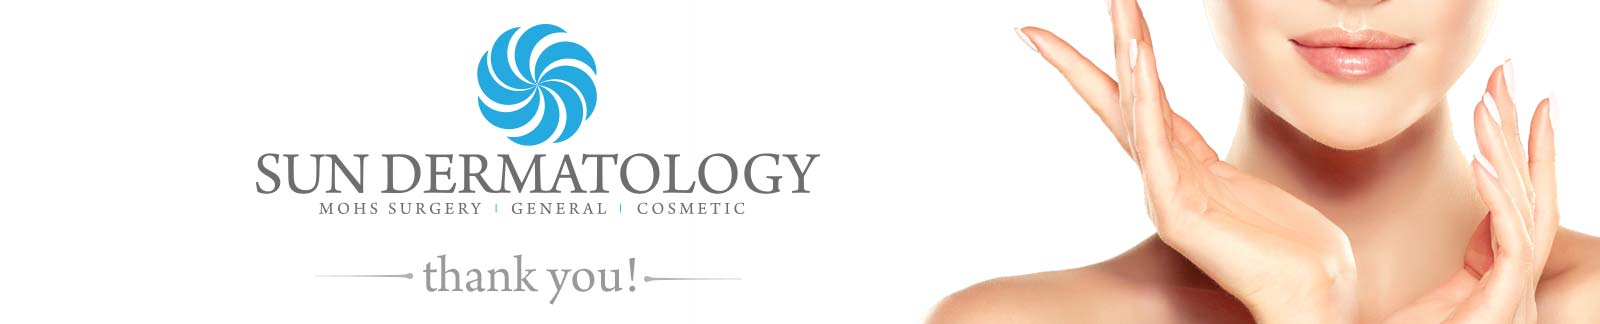 Cosmetic Services and Procedures at Sun Dermatology in Panama City, Florida